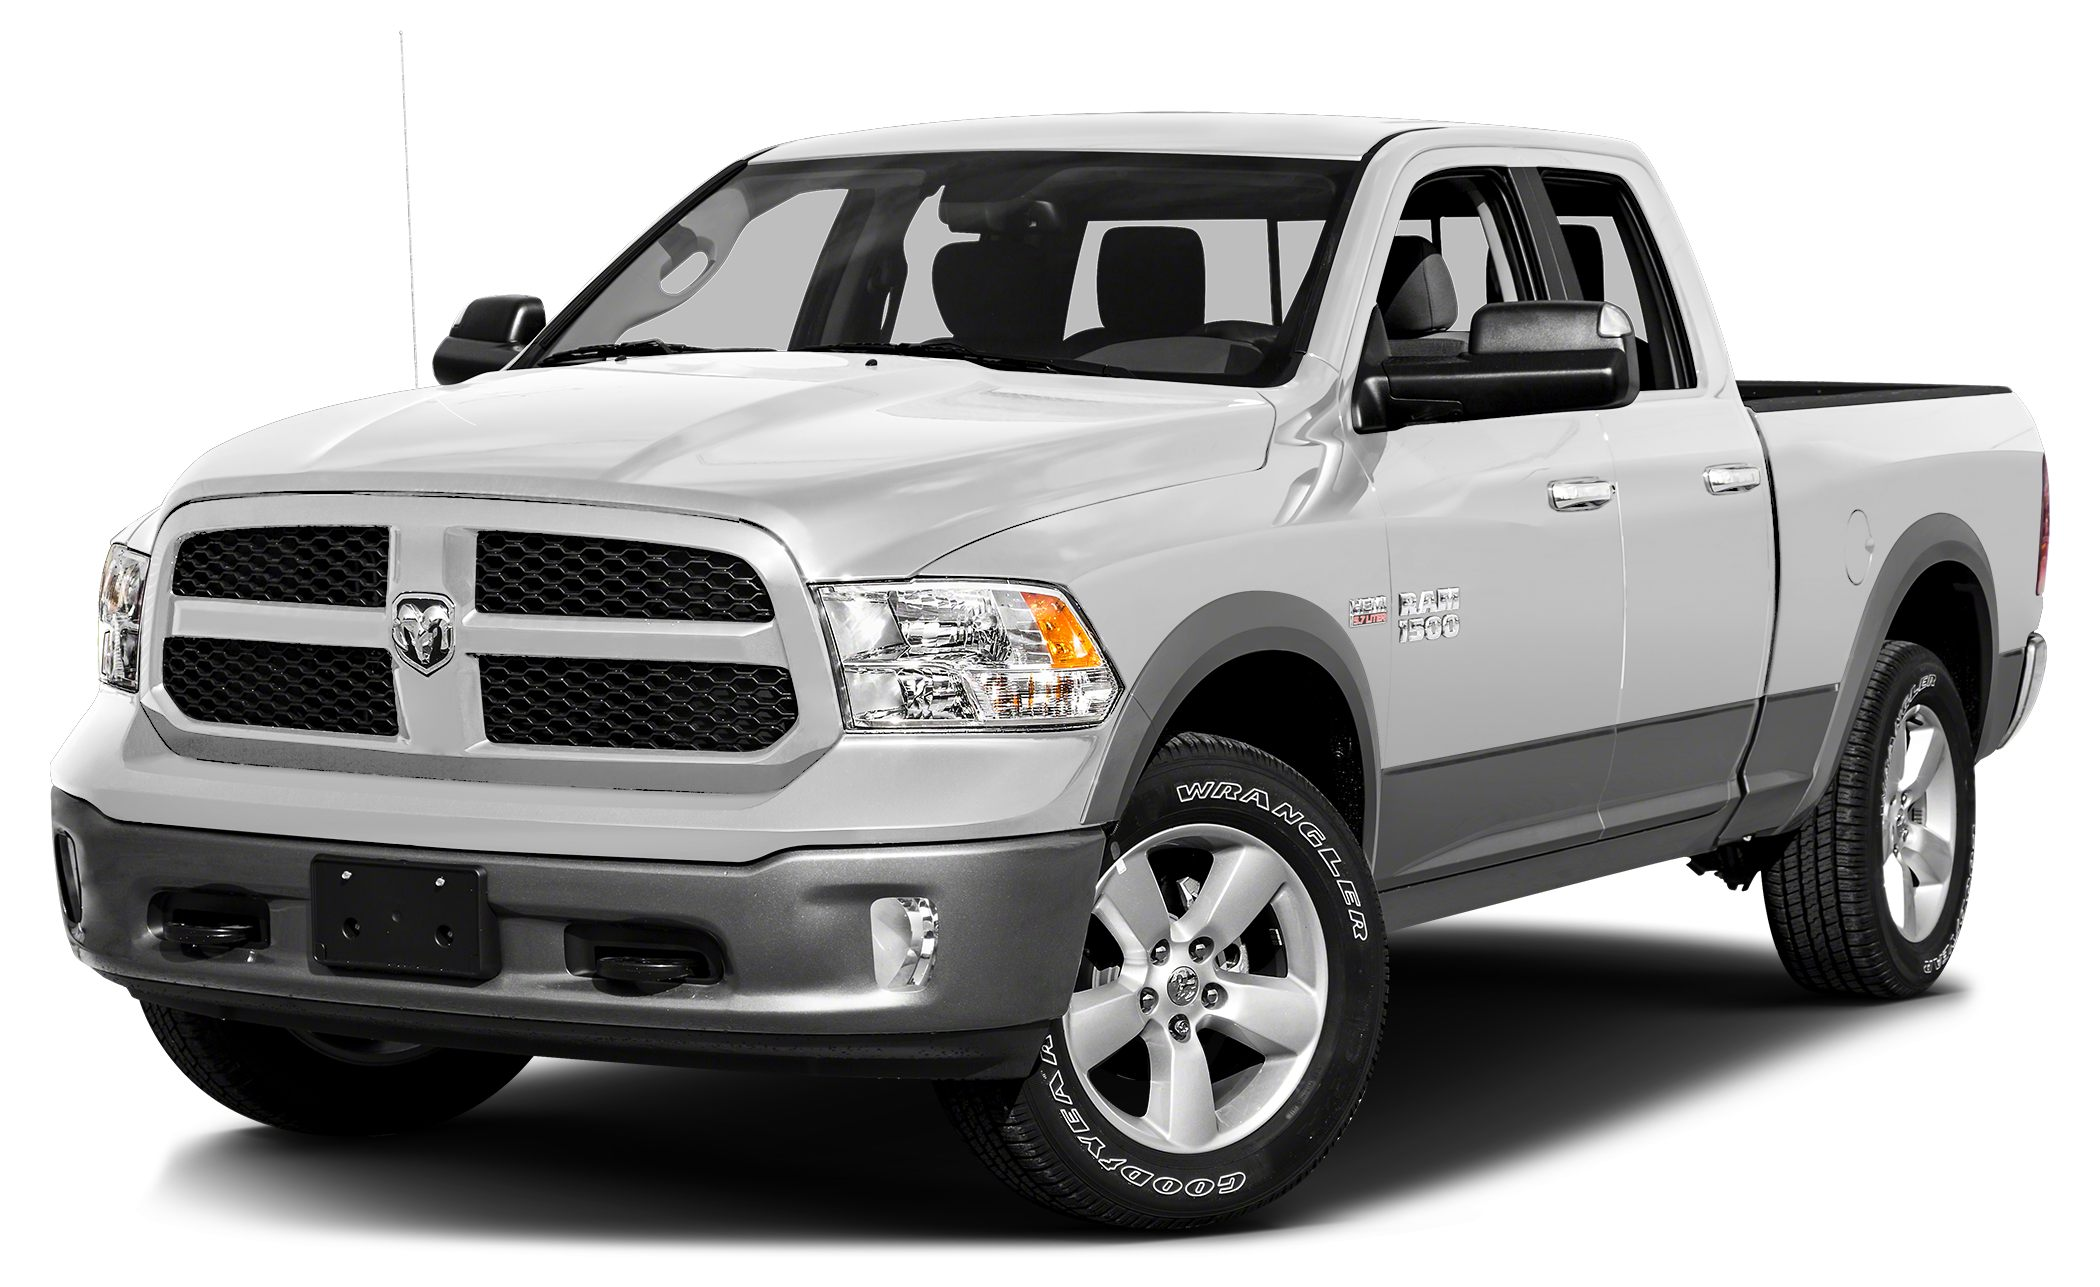 2015 RAM 1500 TradesmanExpress Low Miles Carfax One Owner - Carfax Guarantee This 2015 Ram 1